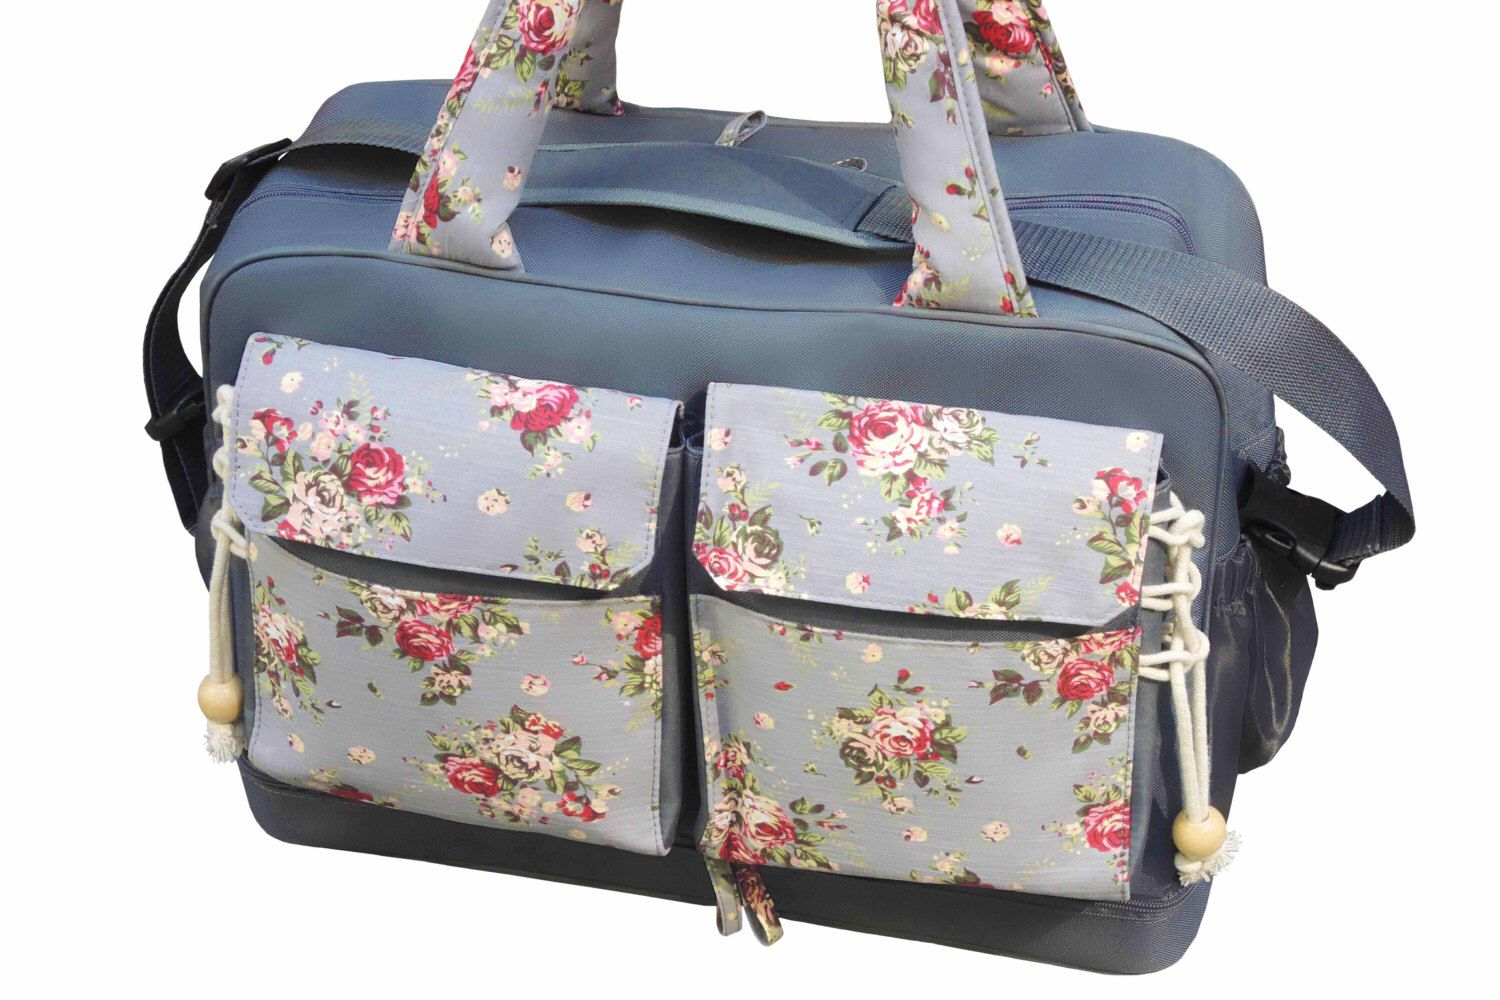 Diaper Bag Large Messenger Tote Two Compartments Inside 4 Bottle Holders Changing Pad Wet